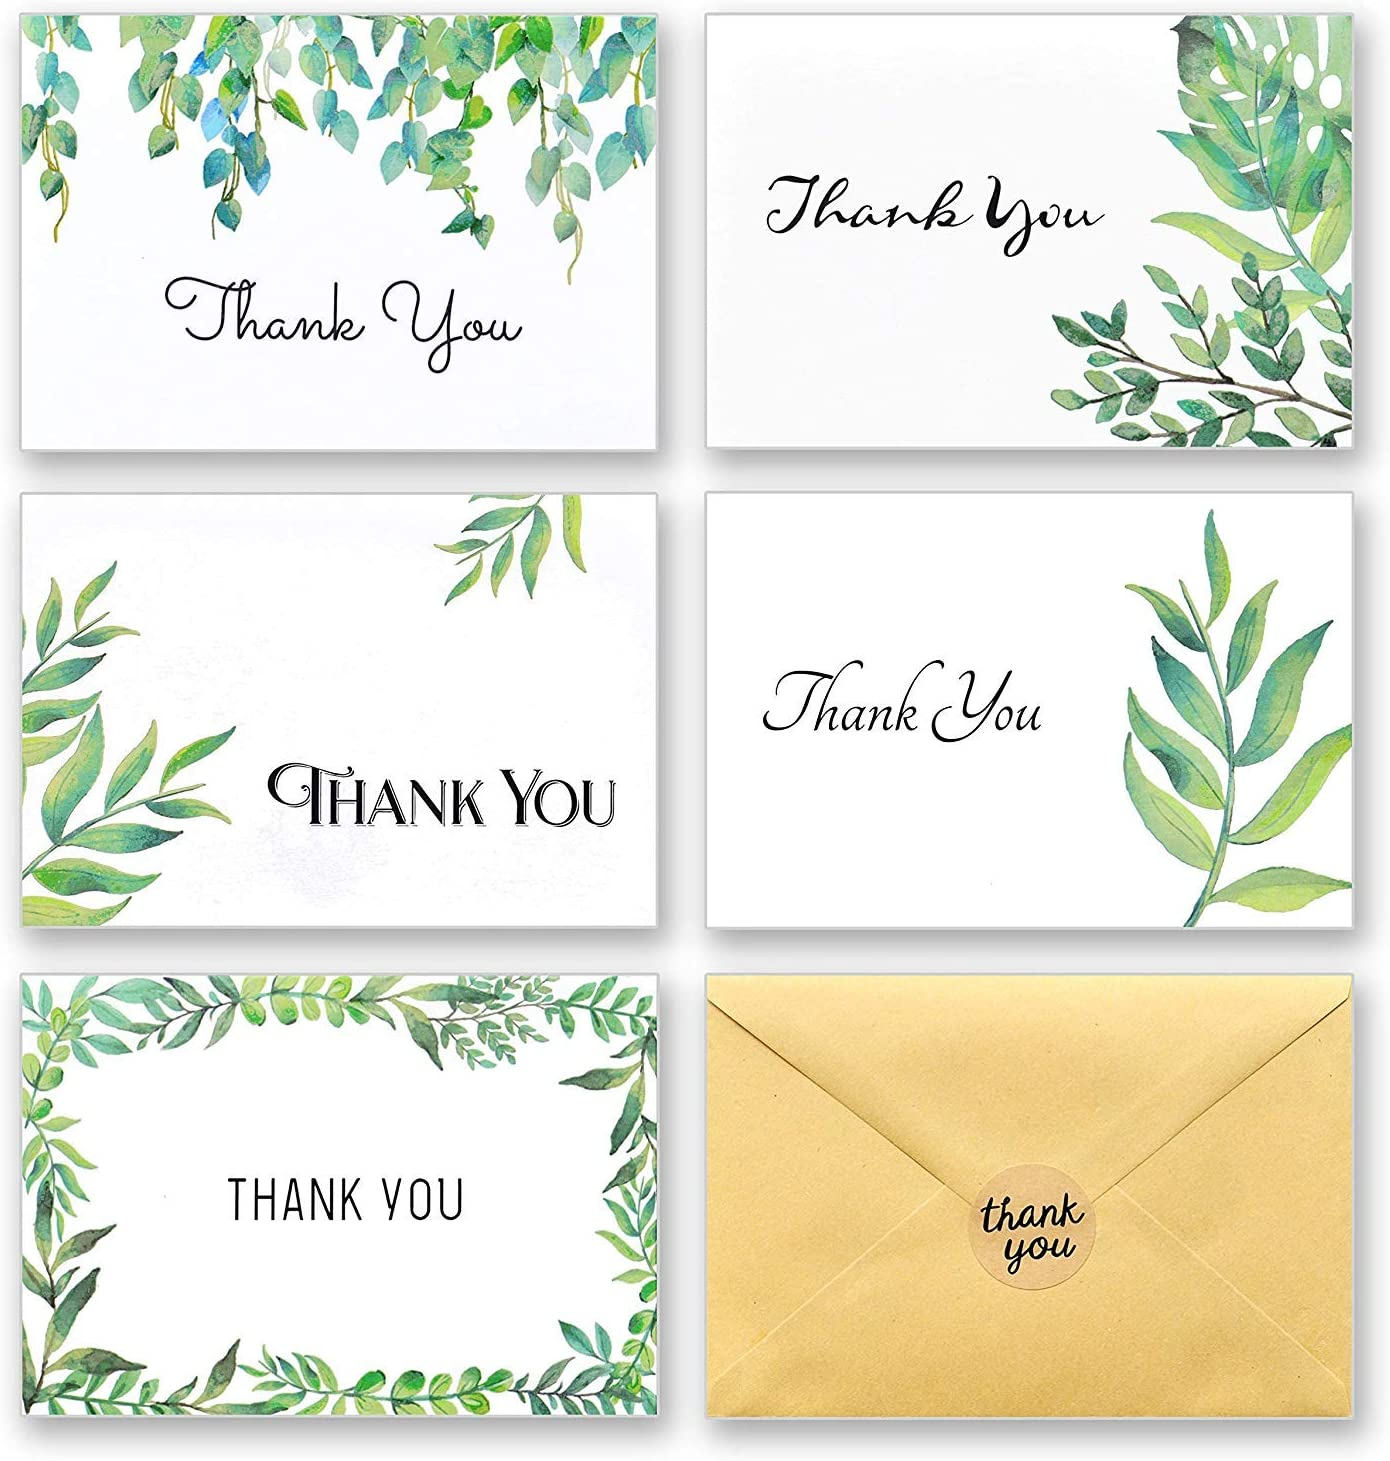 100 Thank You Cards with Envelopes and Stickers - White Kraft Paper Watercolor Floral, Greenery Leaves Bulk Notes for Gratitude - 5 Design Foliage Cards for Wedding, Baby Shower and All Occasions 4x6